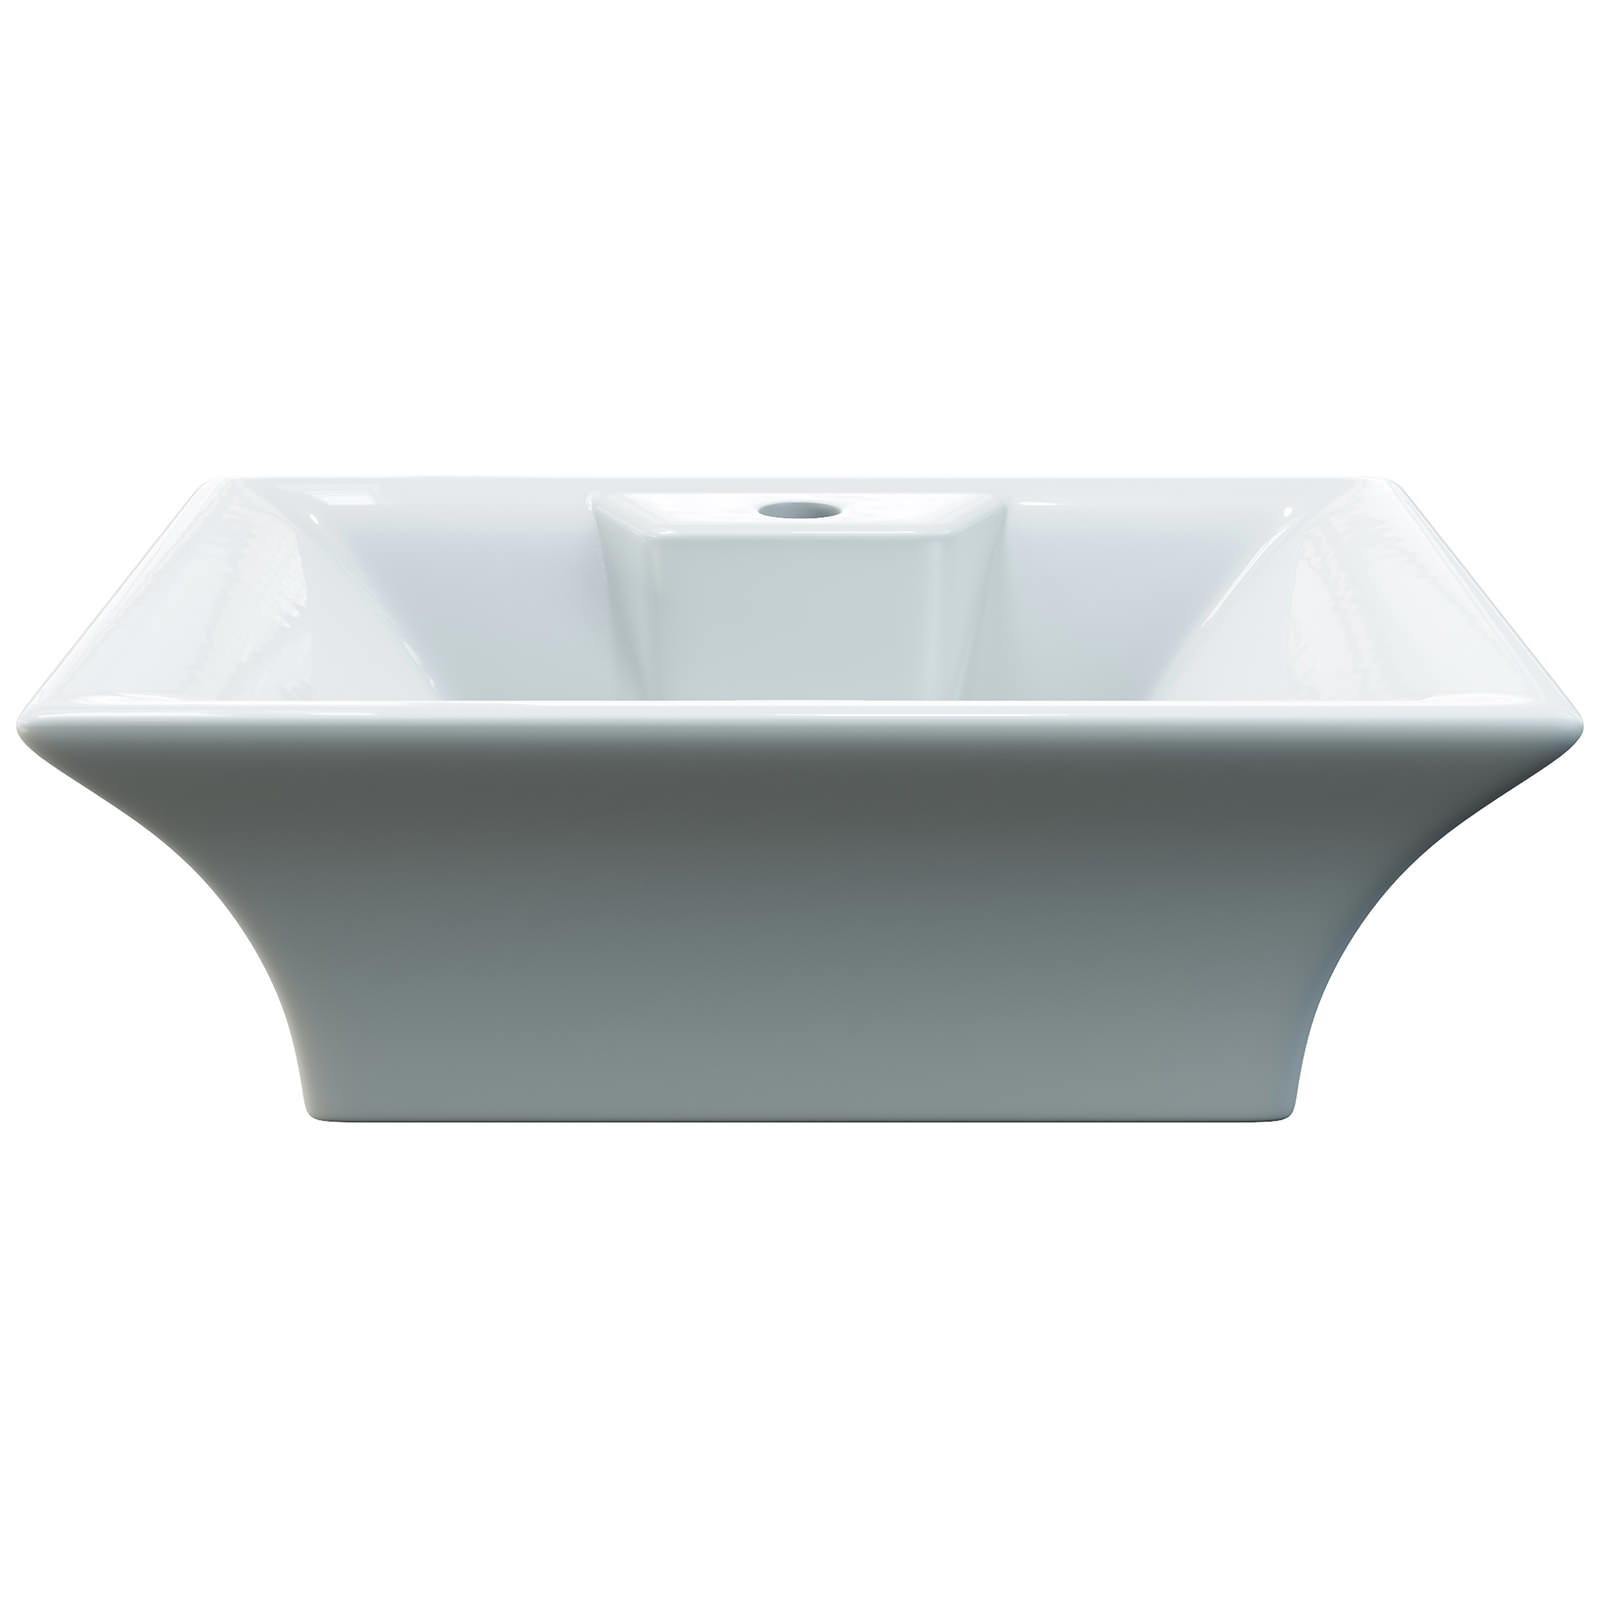 Aqva Atlas Rectangular Countertop Wash Basin Nbv005